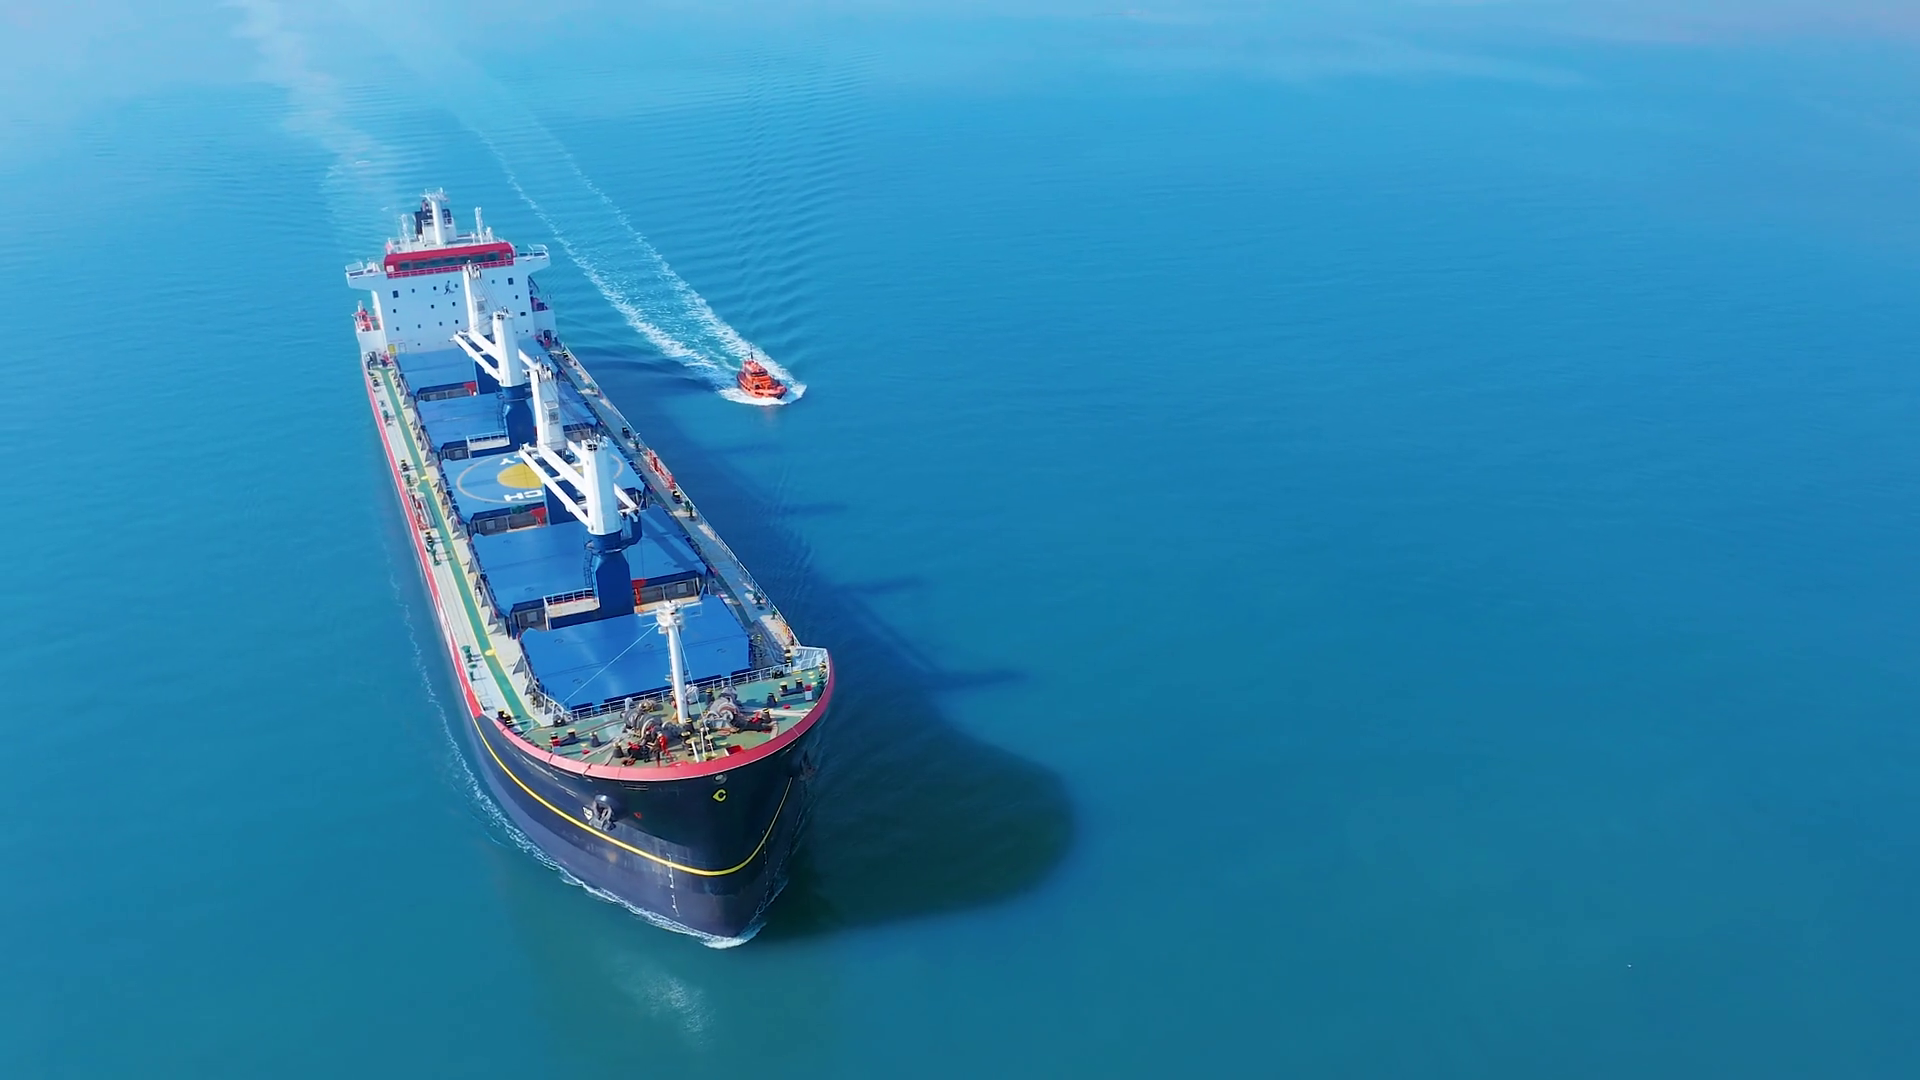 Aerial cinematic 4k with a cargo ship at sea Stock Video Footage -  Storyblocks